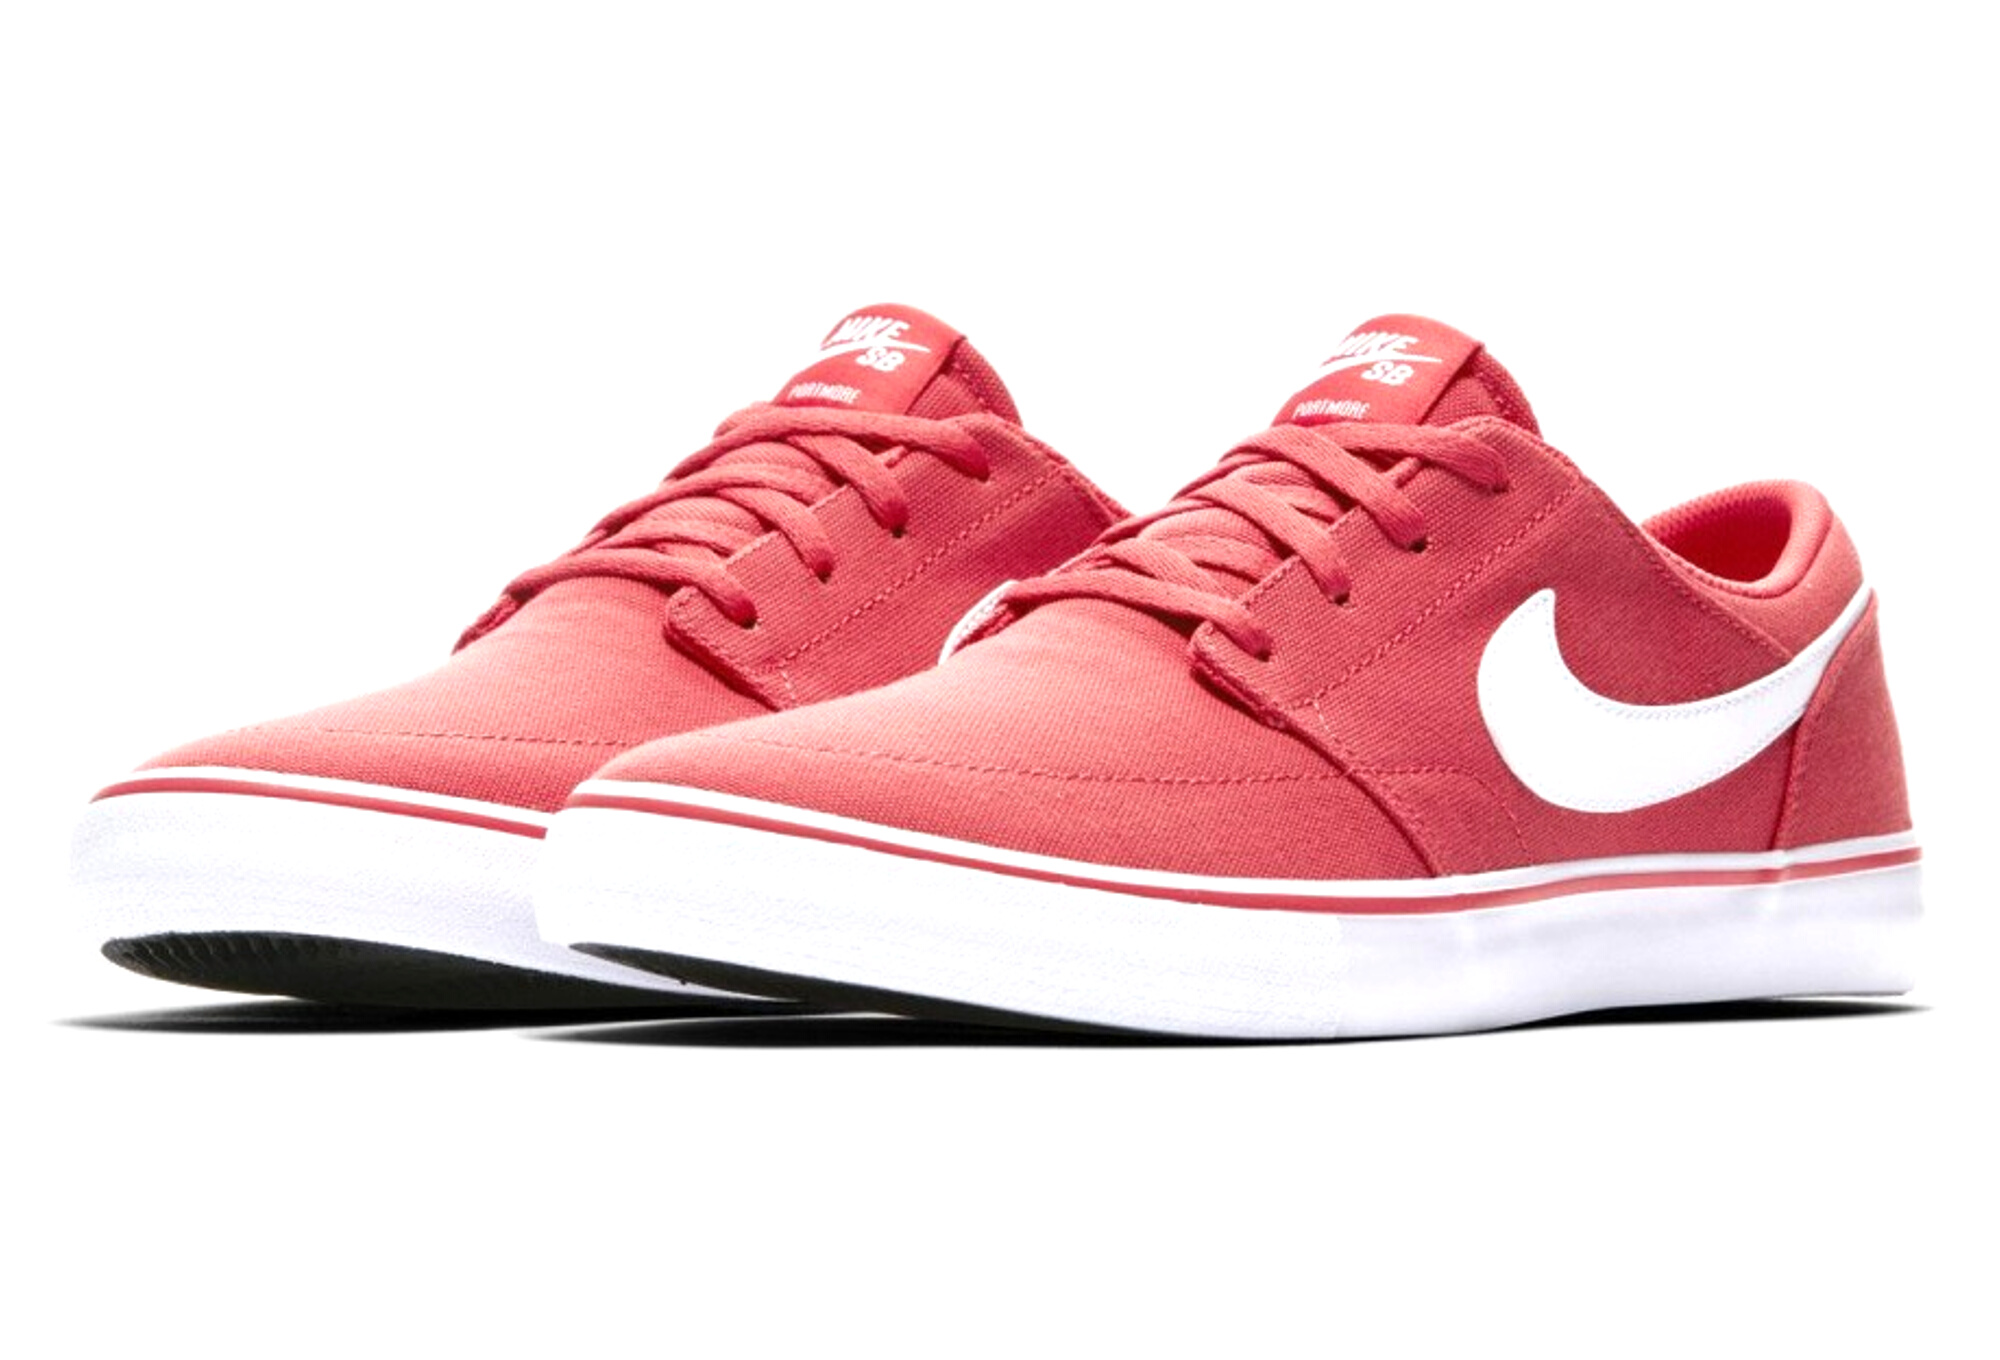 nike sb solarsoft portmore ii shoes canvas red white. Black Bedroom Furniture Sets. Home Design Ideas